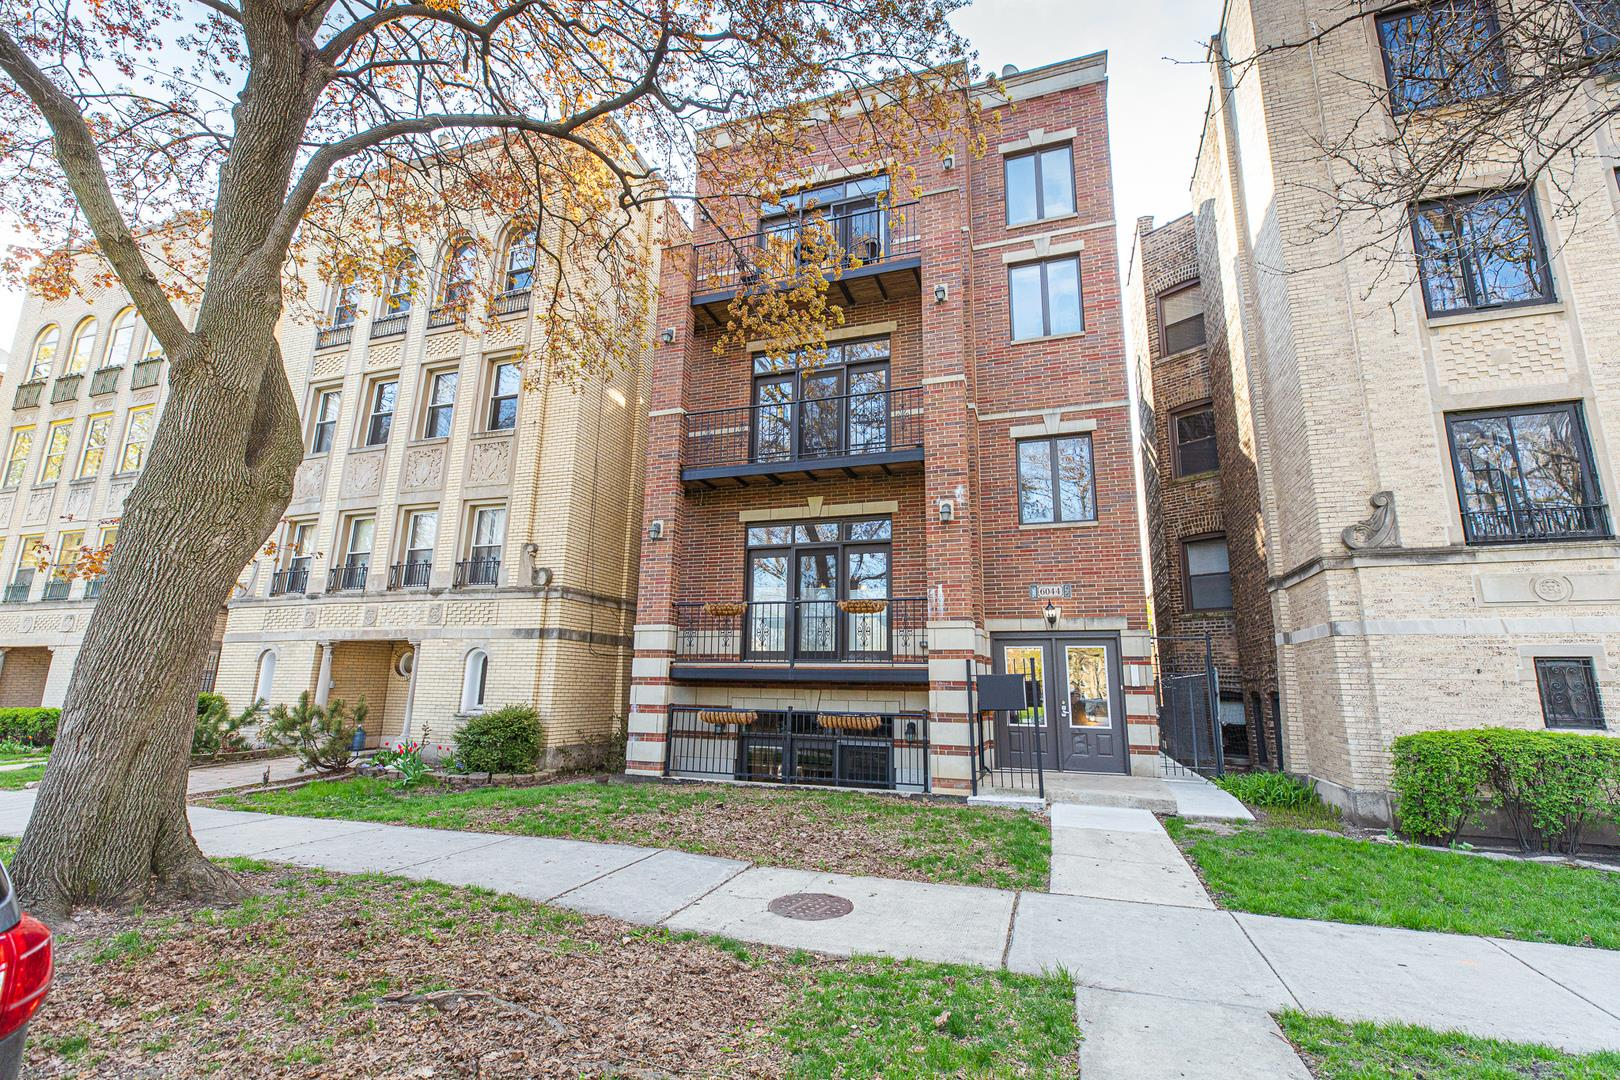 6044 N WASHTENAW Avenue #2, Chicago, IL 60659 - #: 11057568